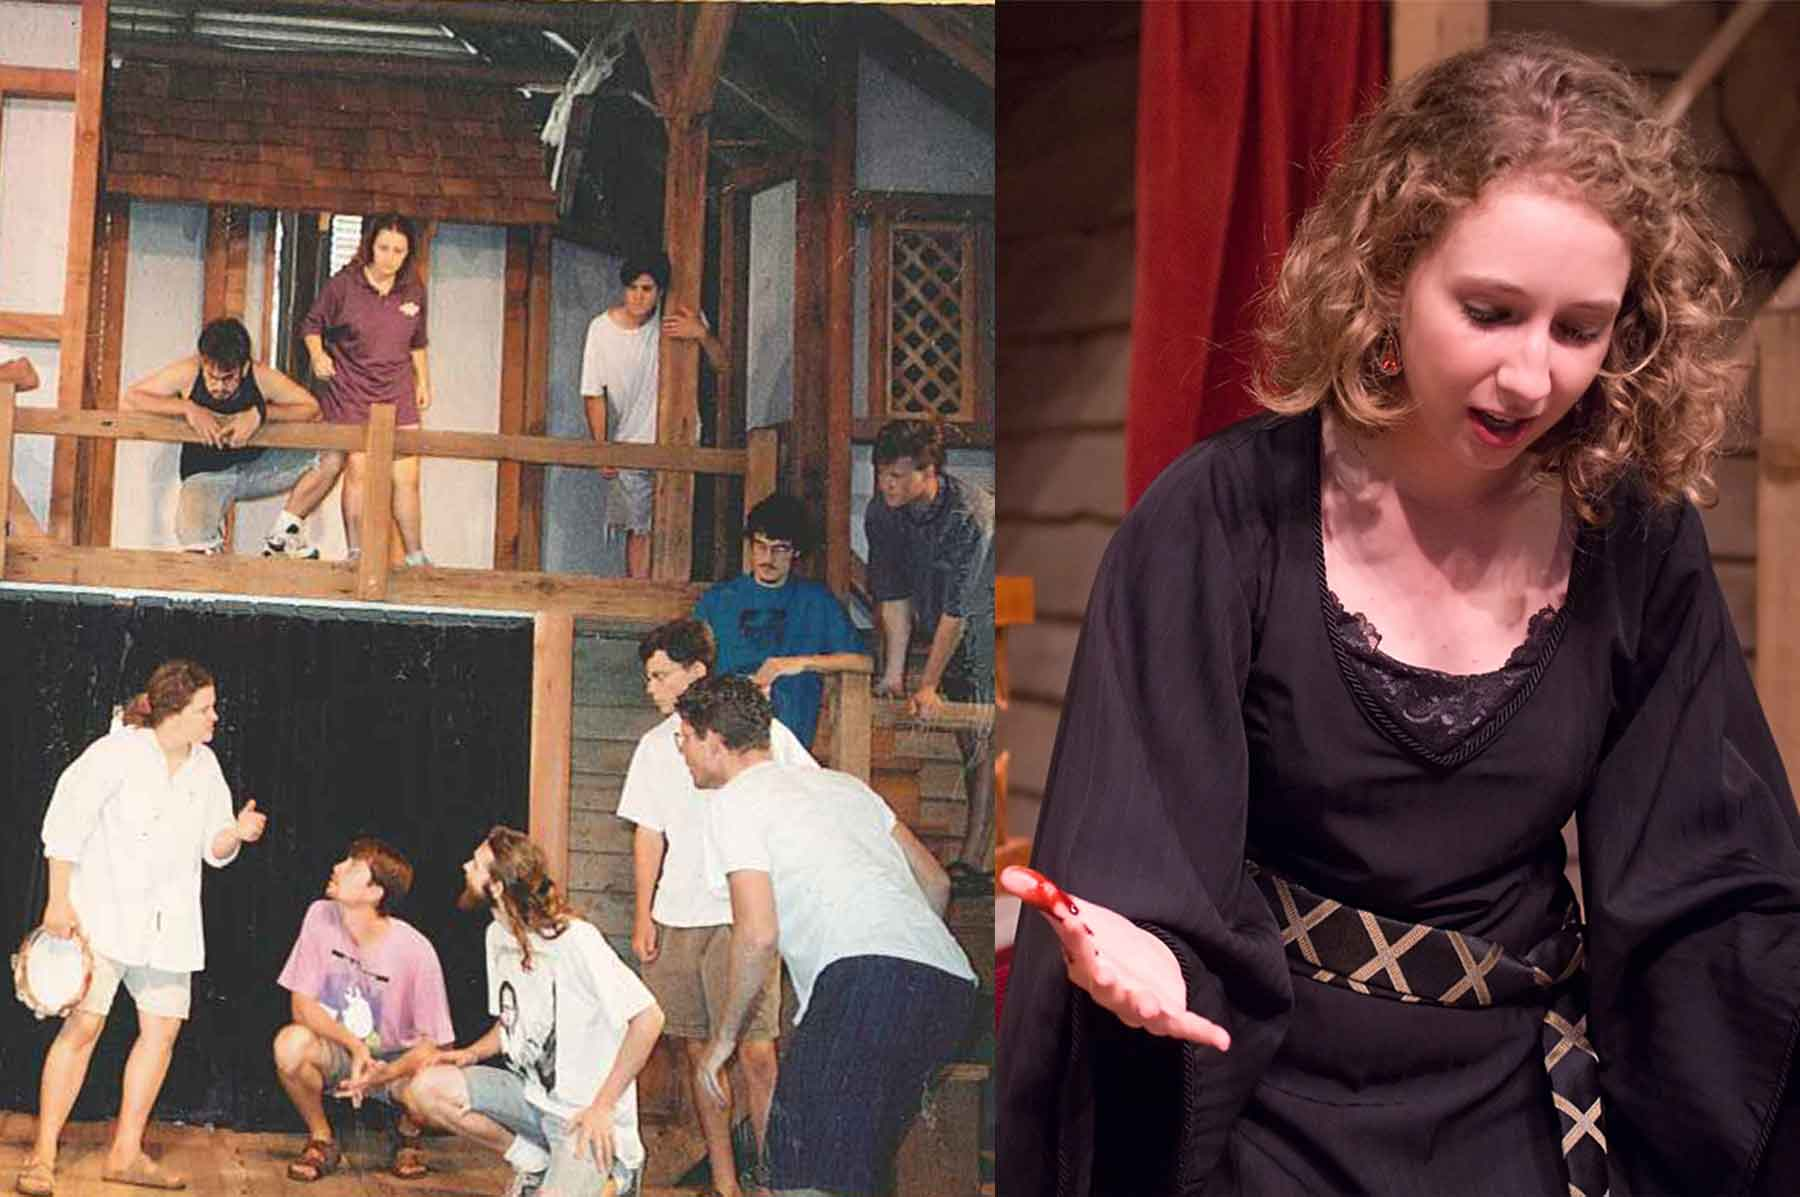 Romeo and Juliet rehearsal in 1994 next to Emilia Mahaffey at performance in 2009.